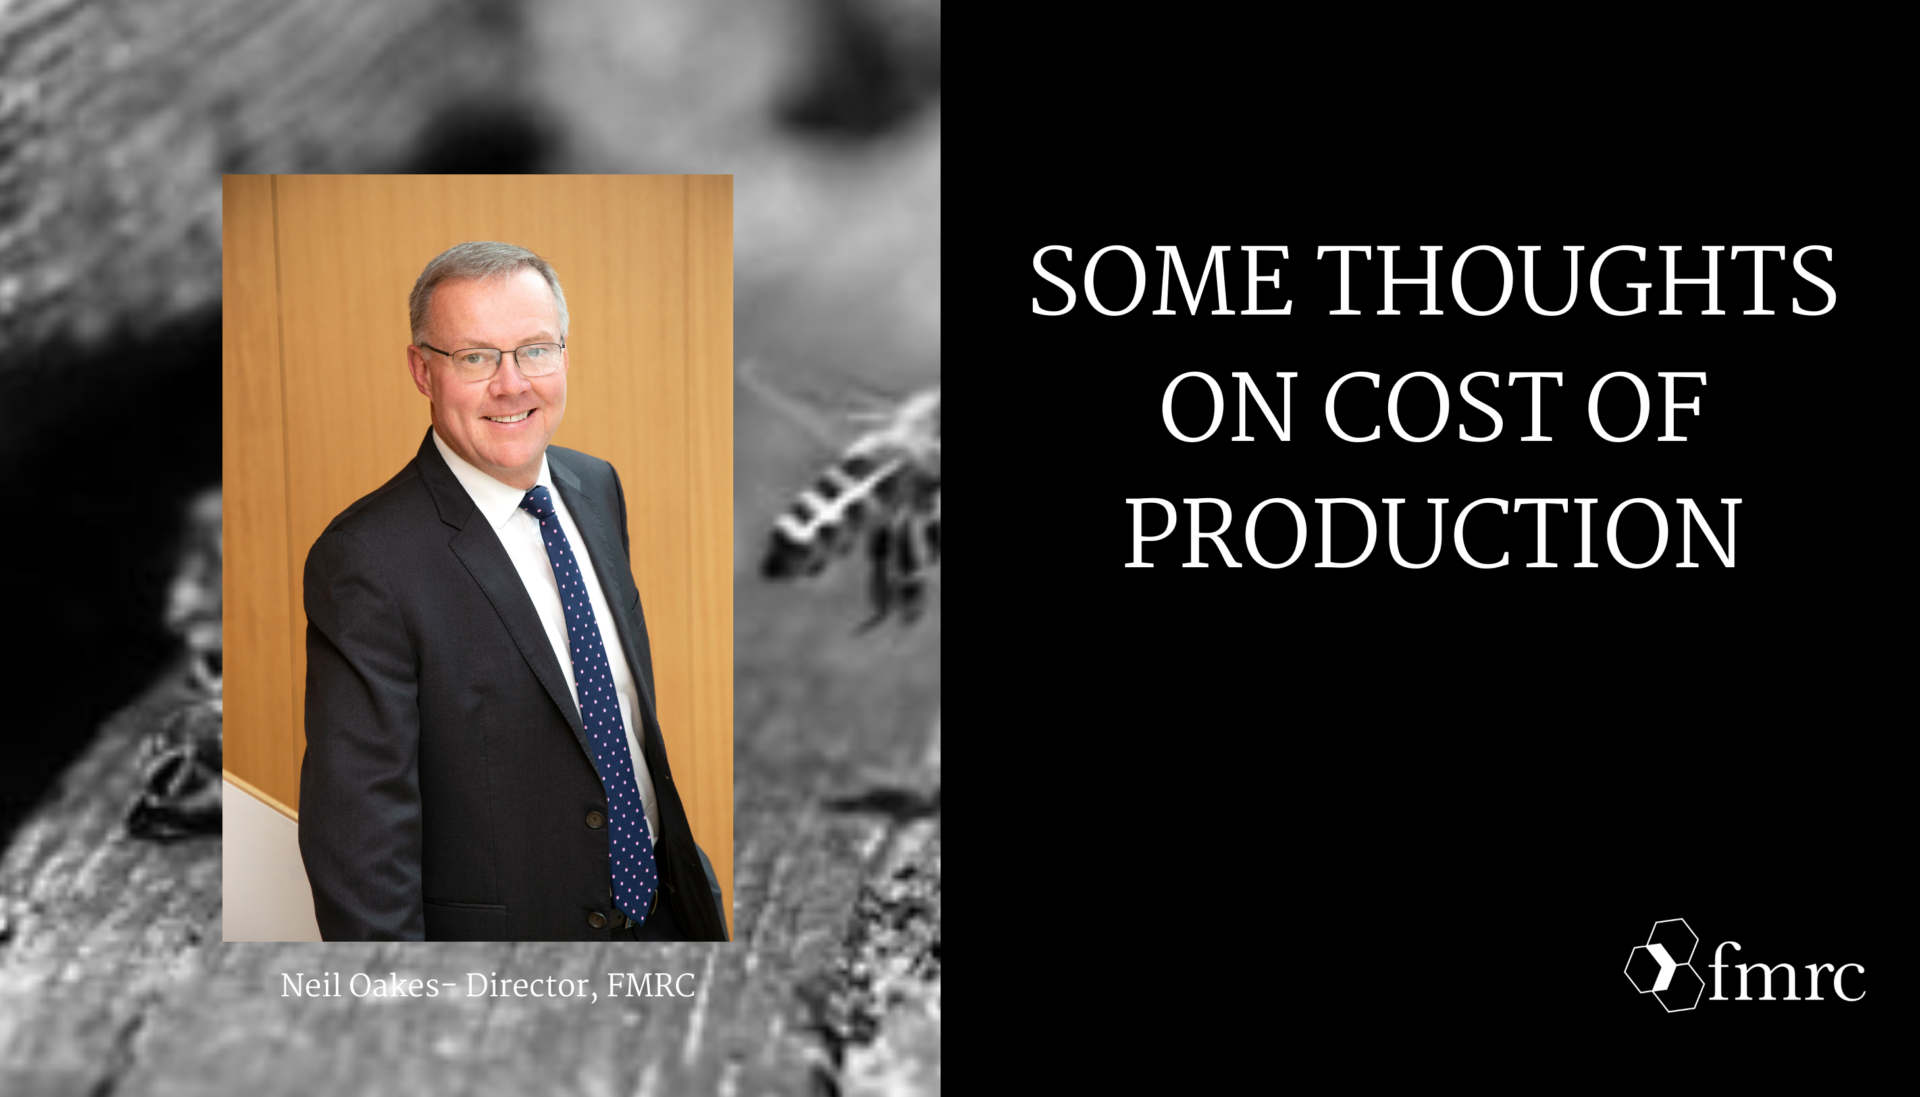 Some Thoughts on Cost of Production